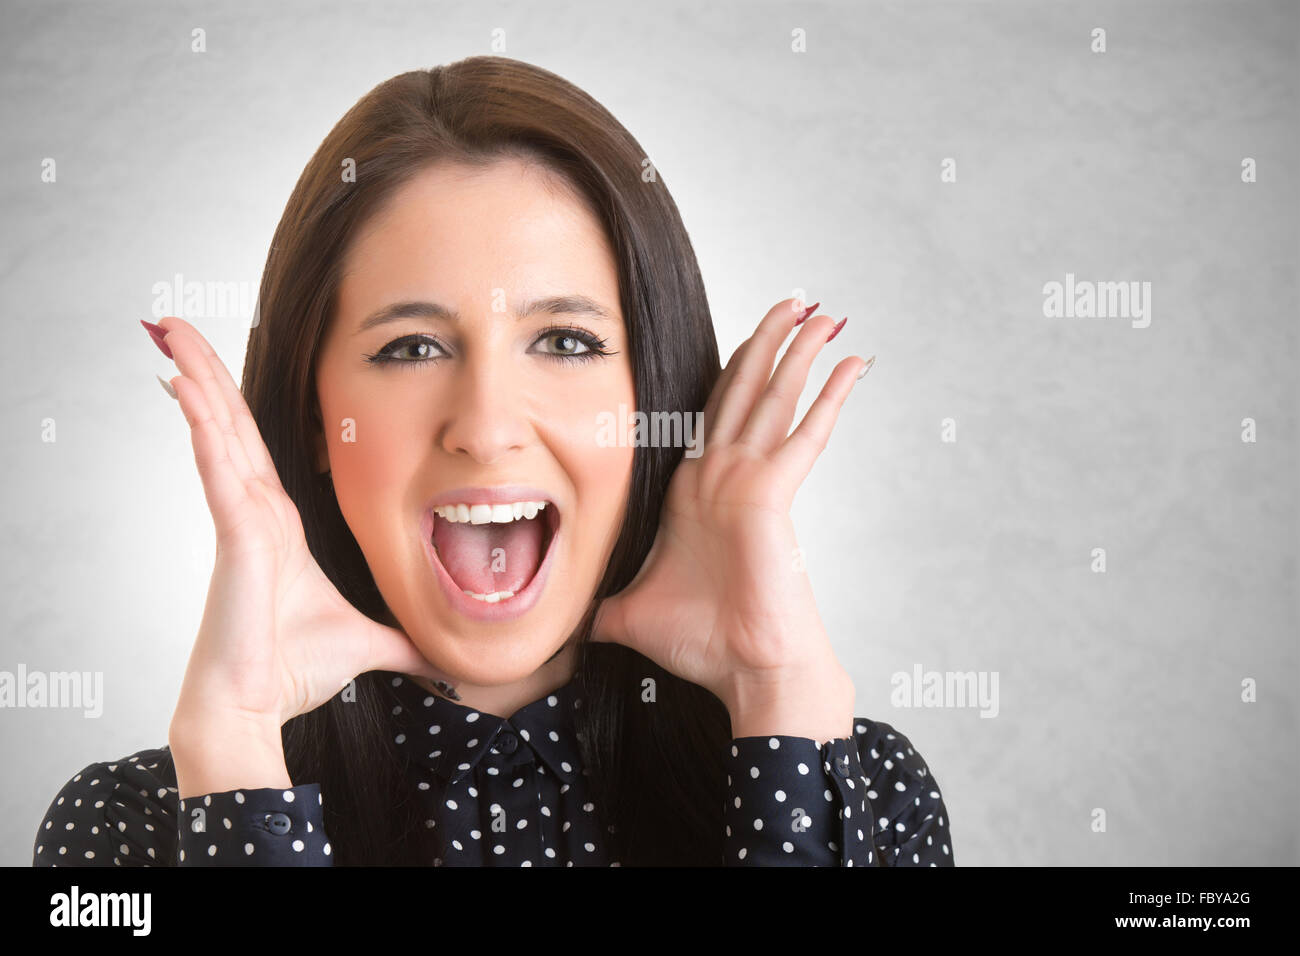 Woman suffering from a nervous breakdown, holding her hands to her head, isolated in white - Stock Image